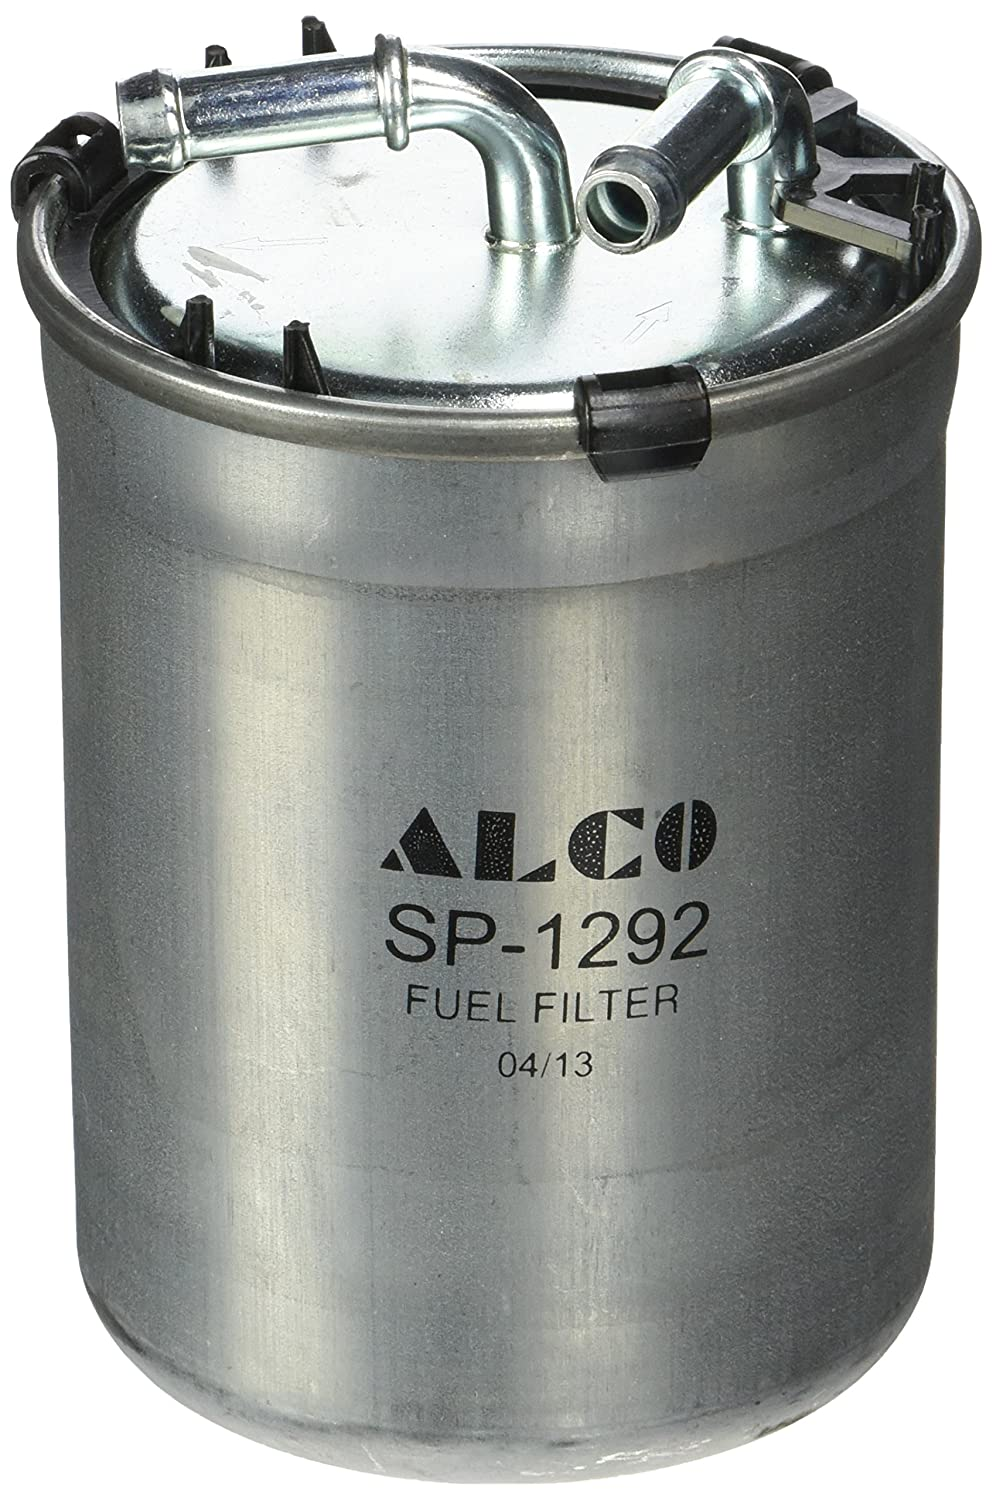 Alco Filter SP-1292 - Filtro Carburante Alco Filter Gmbh